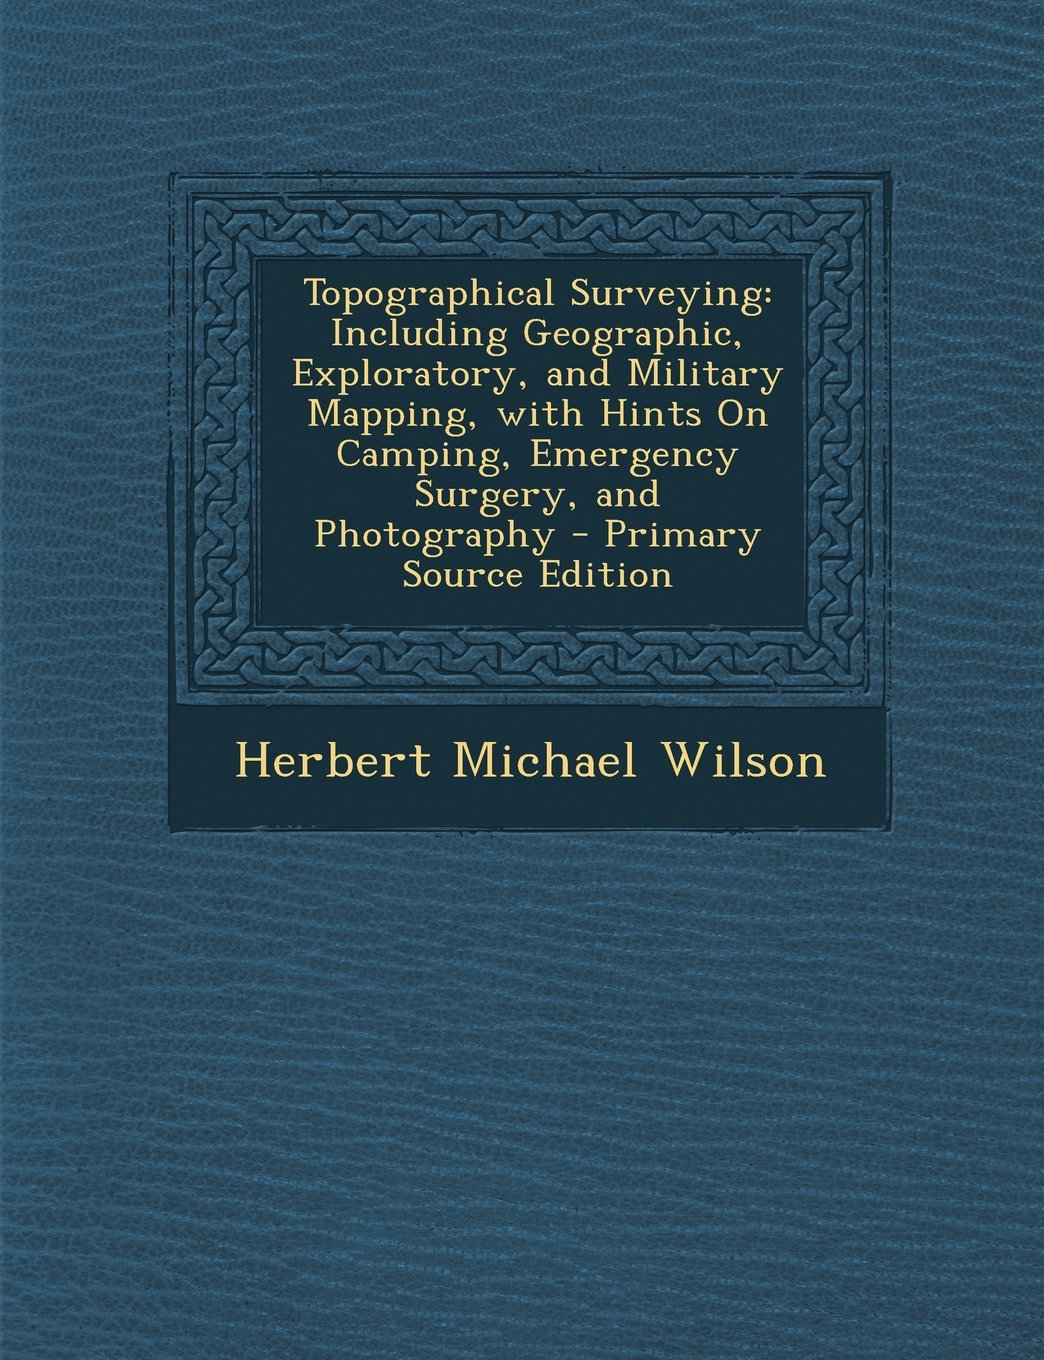 Download Topographical Surveying: Including Geographic, Exploratory, and Military Mapping, with Hints on Camping, Emergency Surgery, and Photography - P PDF